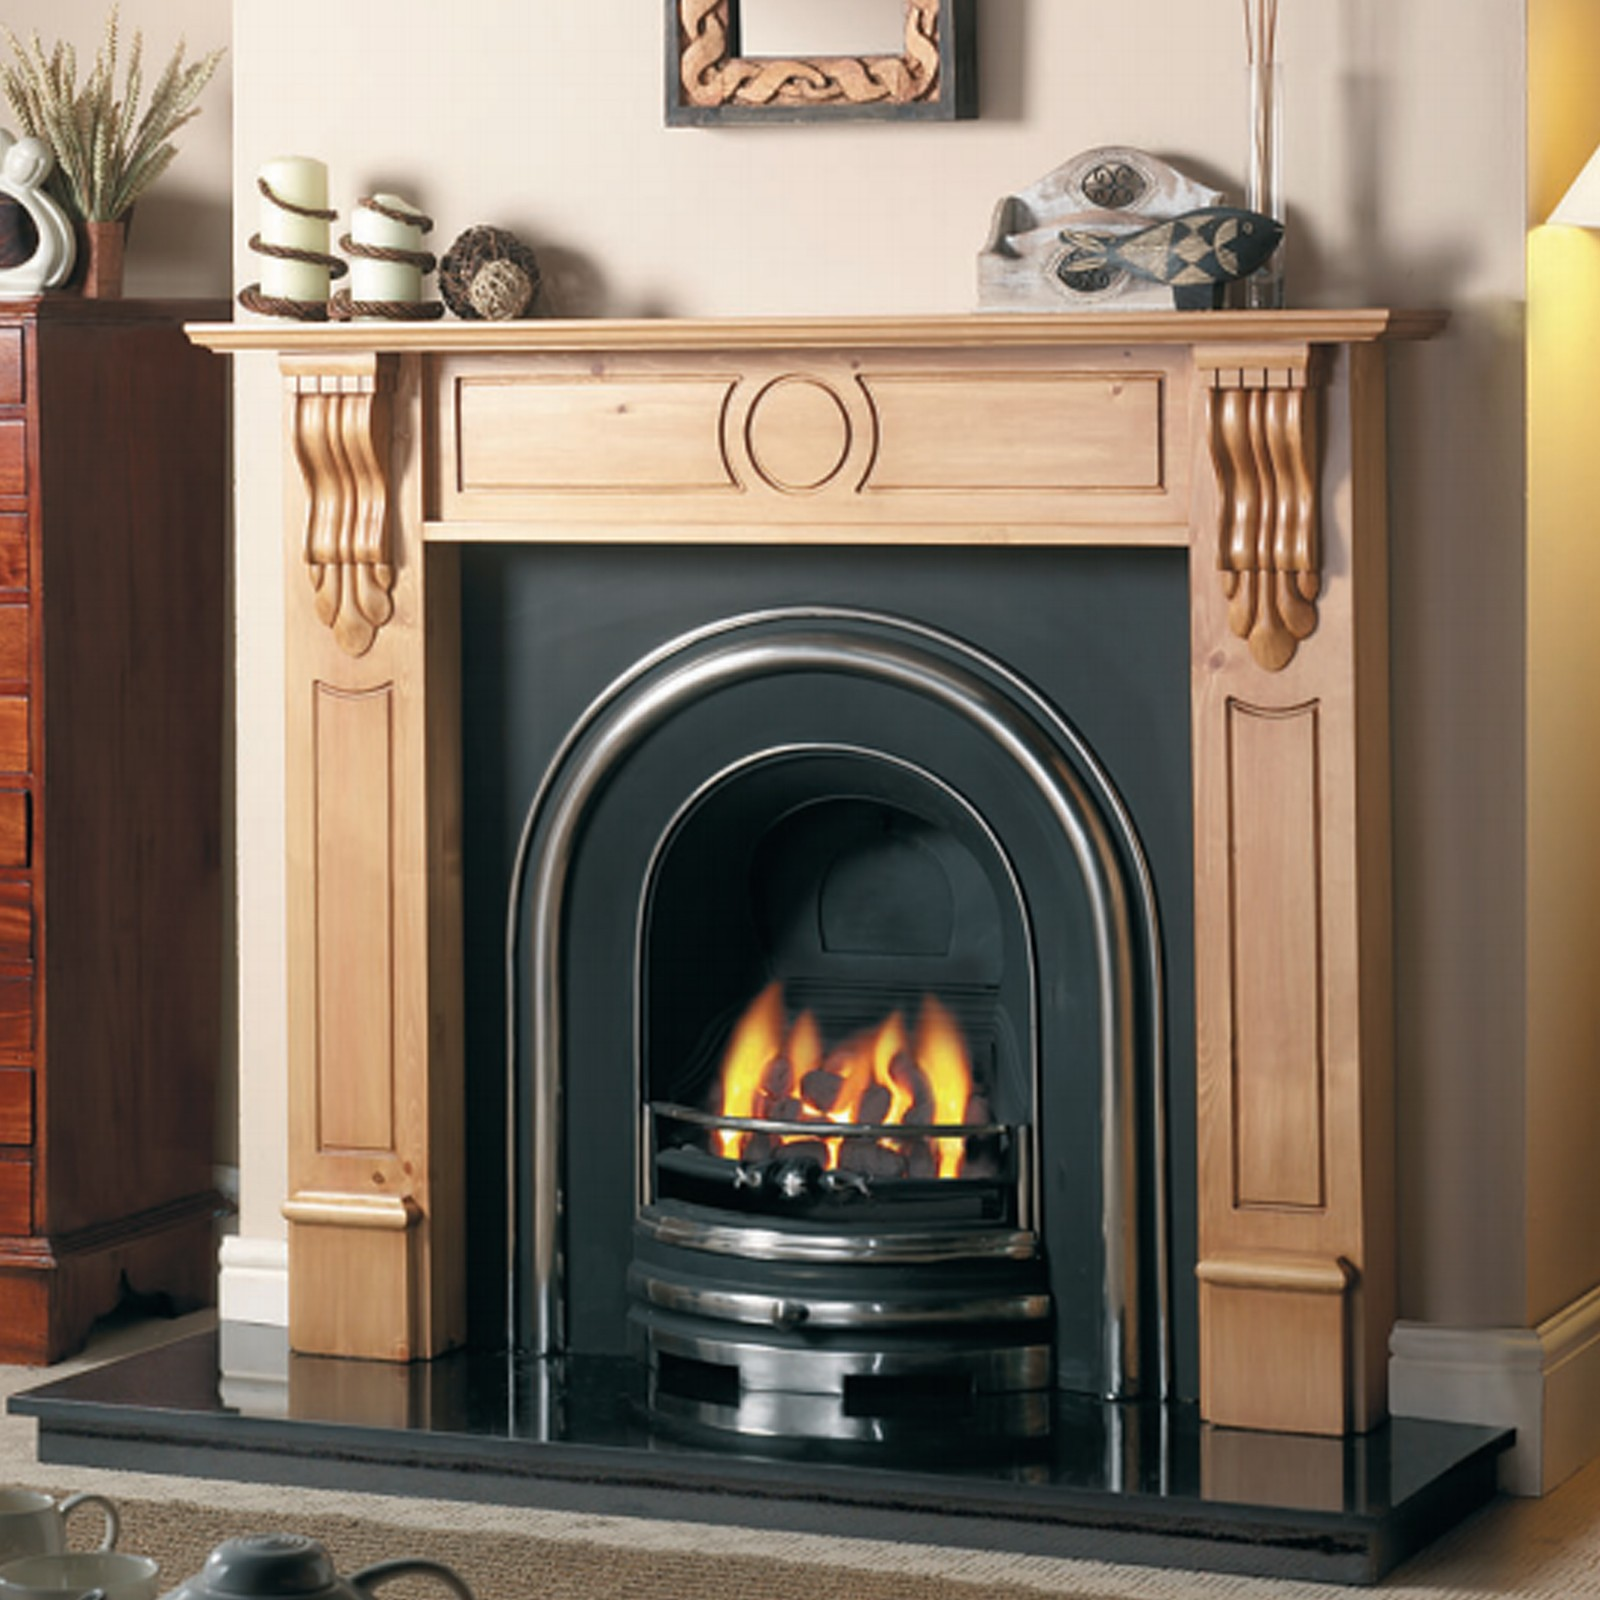 classic cast tec royal arch fireplace insert fantastic